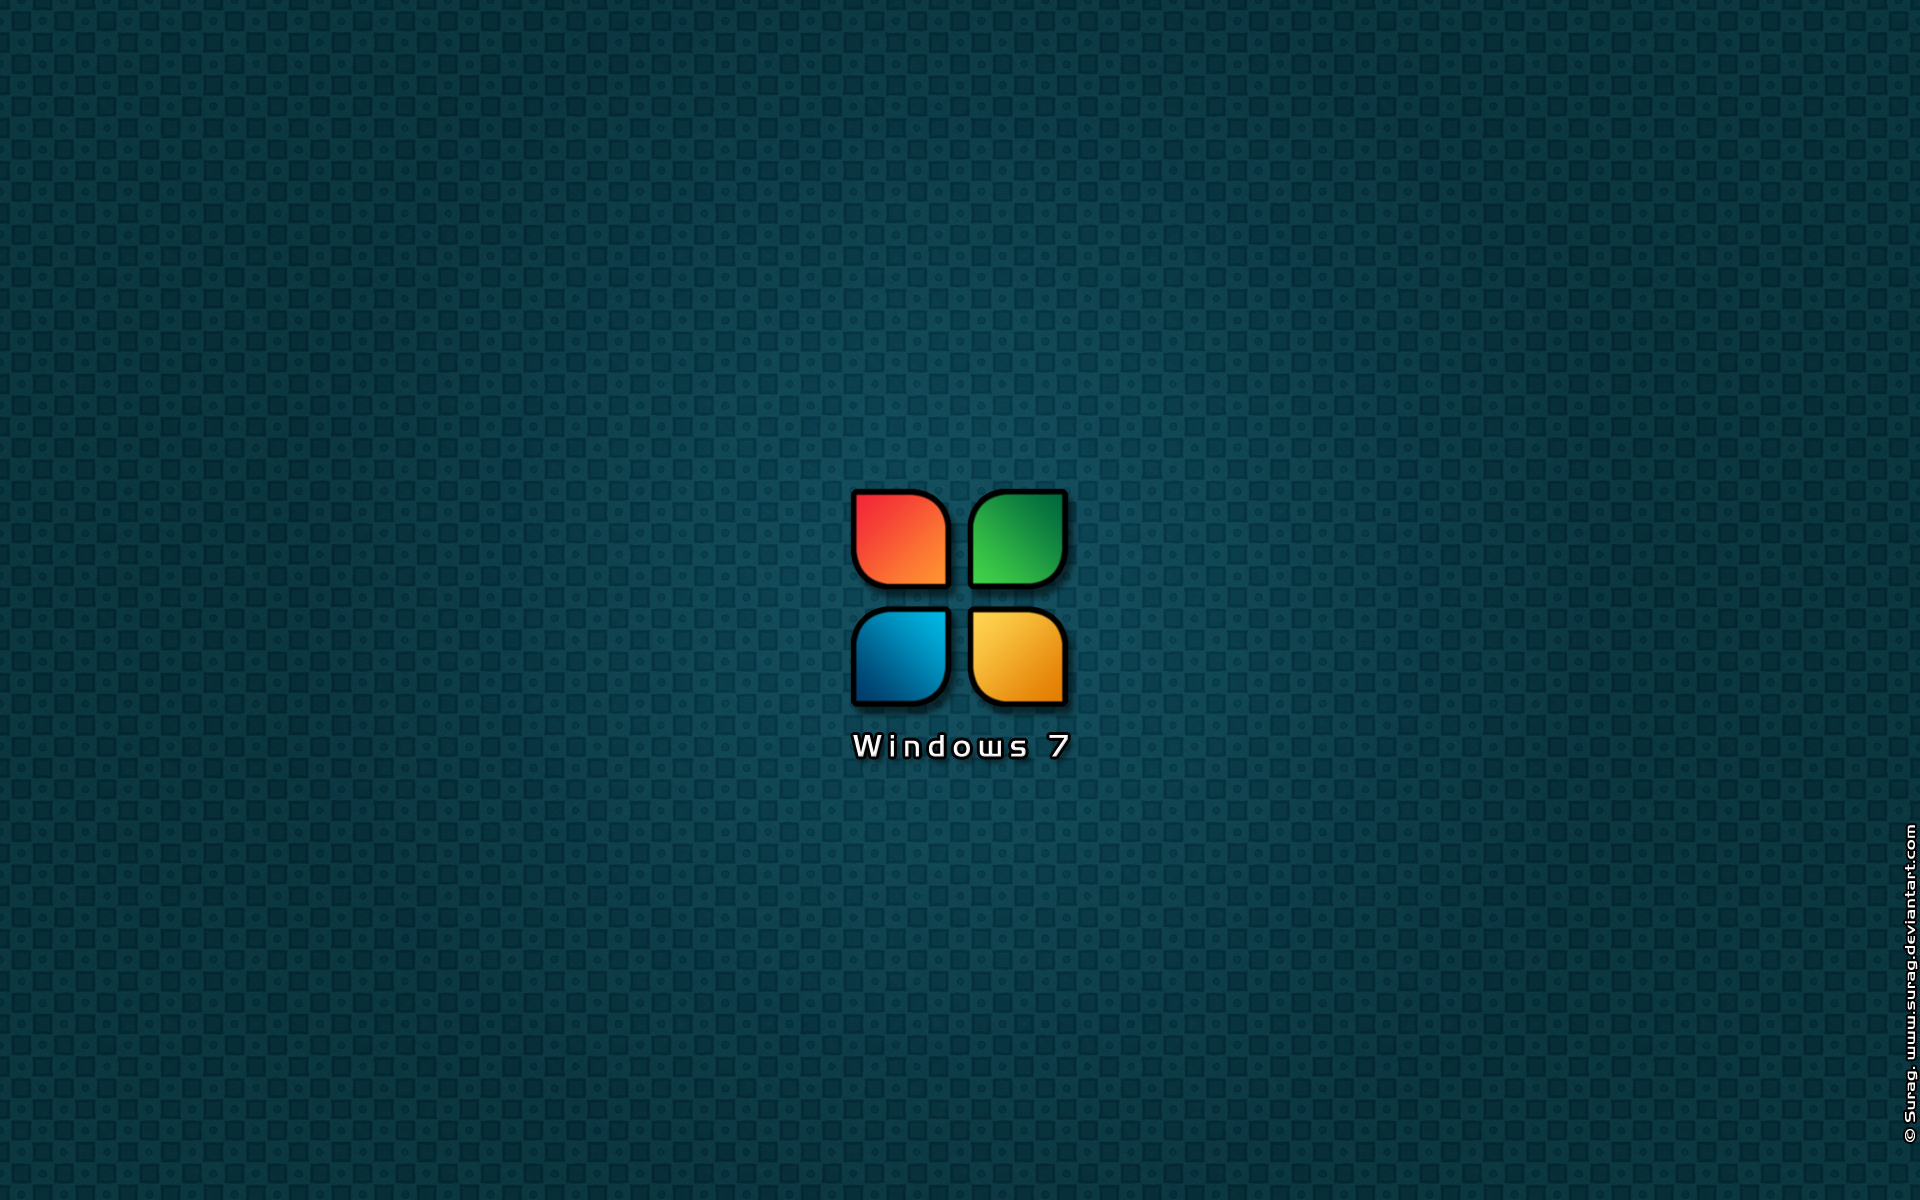 Windows microsoft windows wallpaper 34435765 fanpop for Microsoft windows